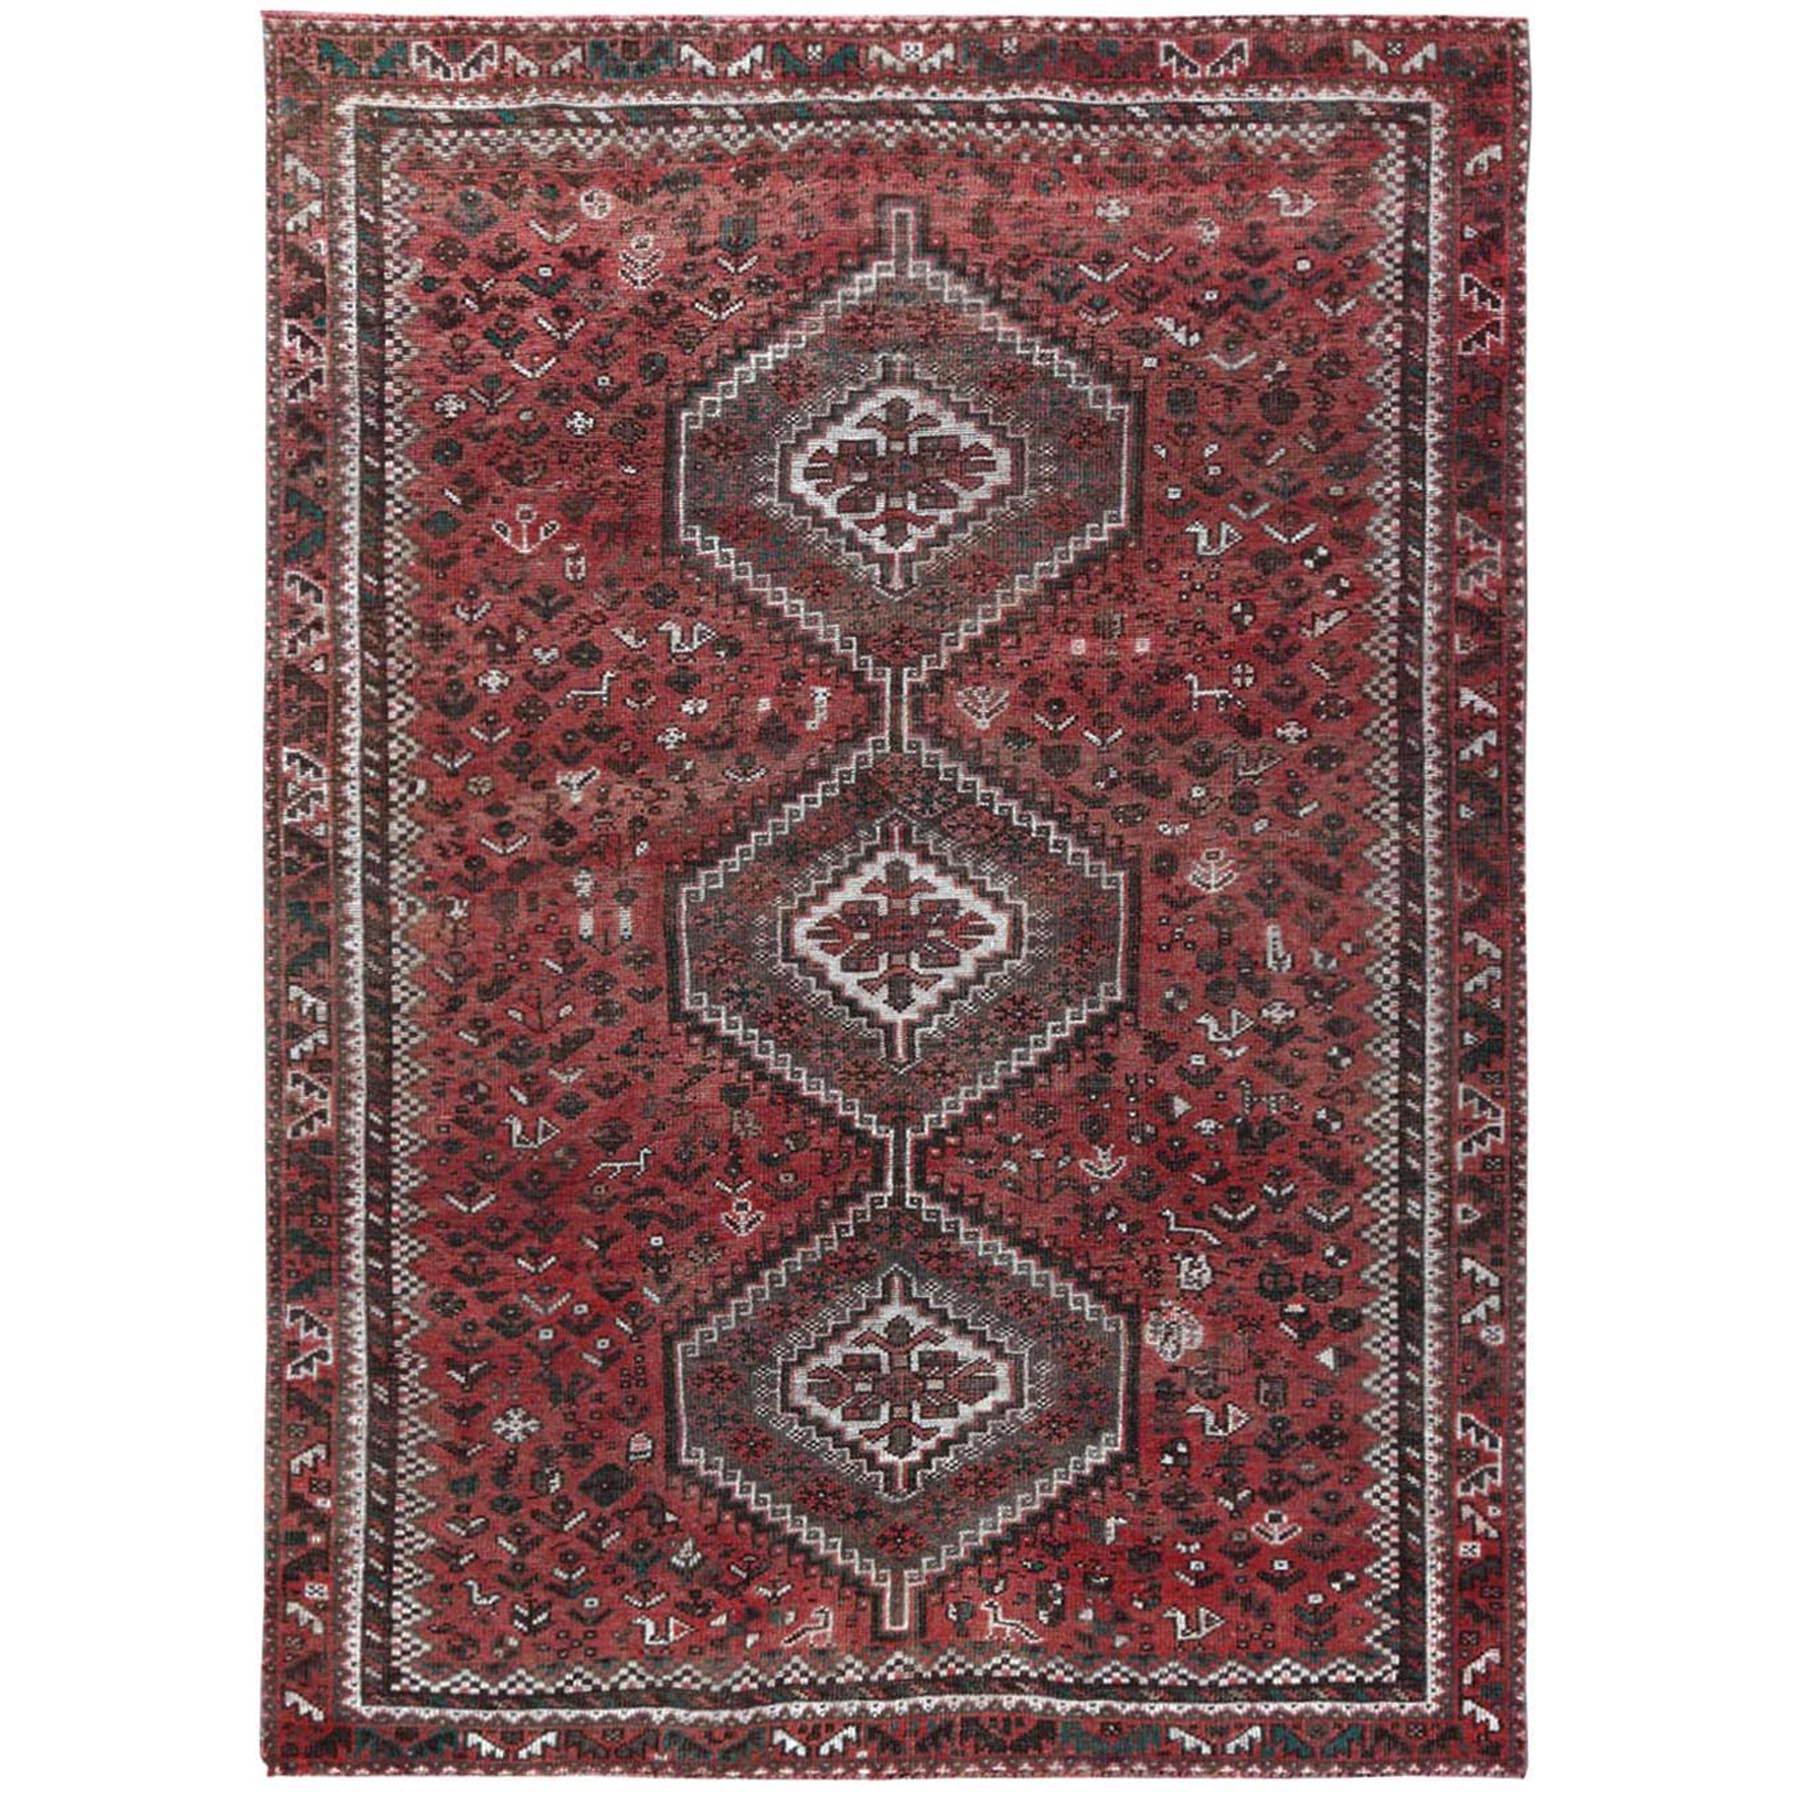 "6'9""x9'6"" Red Vintage and Worn Down Geometric Design Persian Shiraz Hand Knotted Oriental Rug"